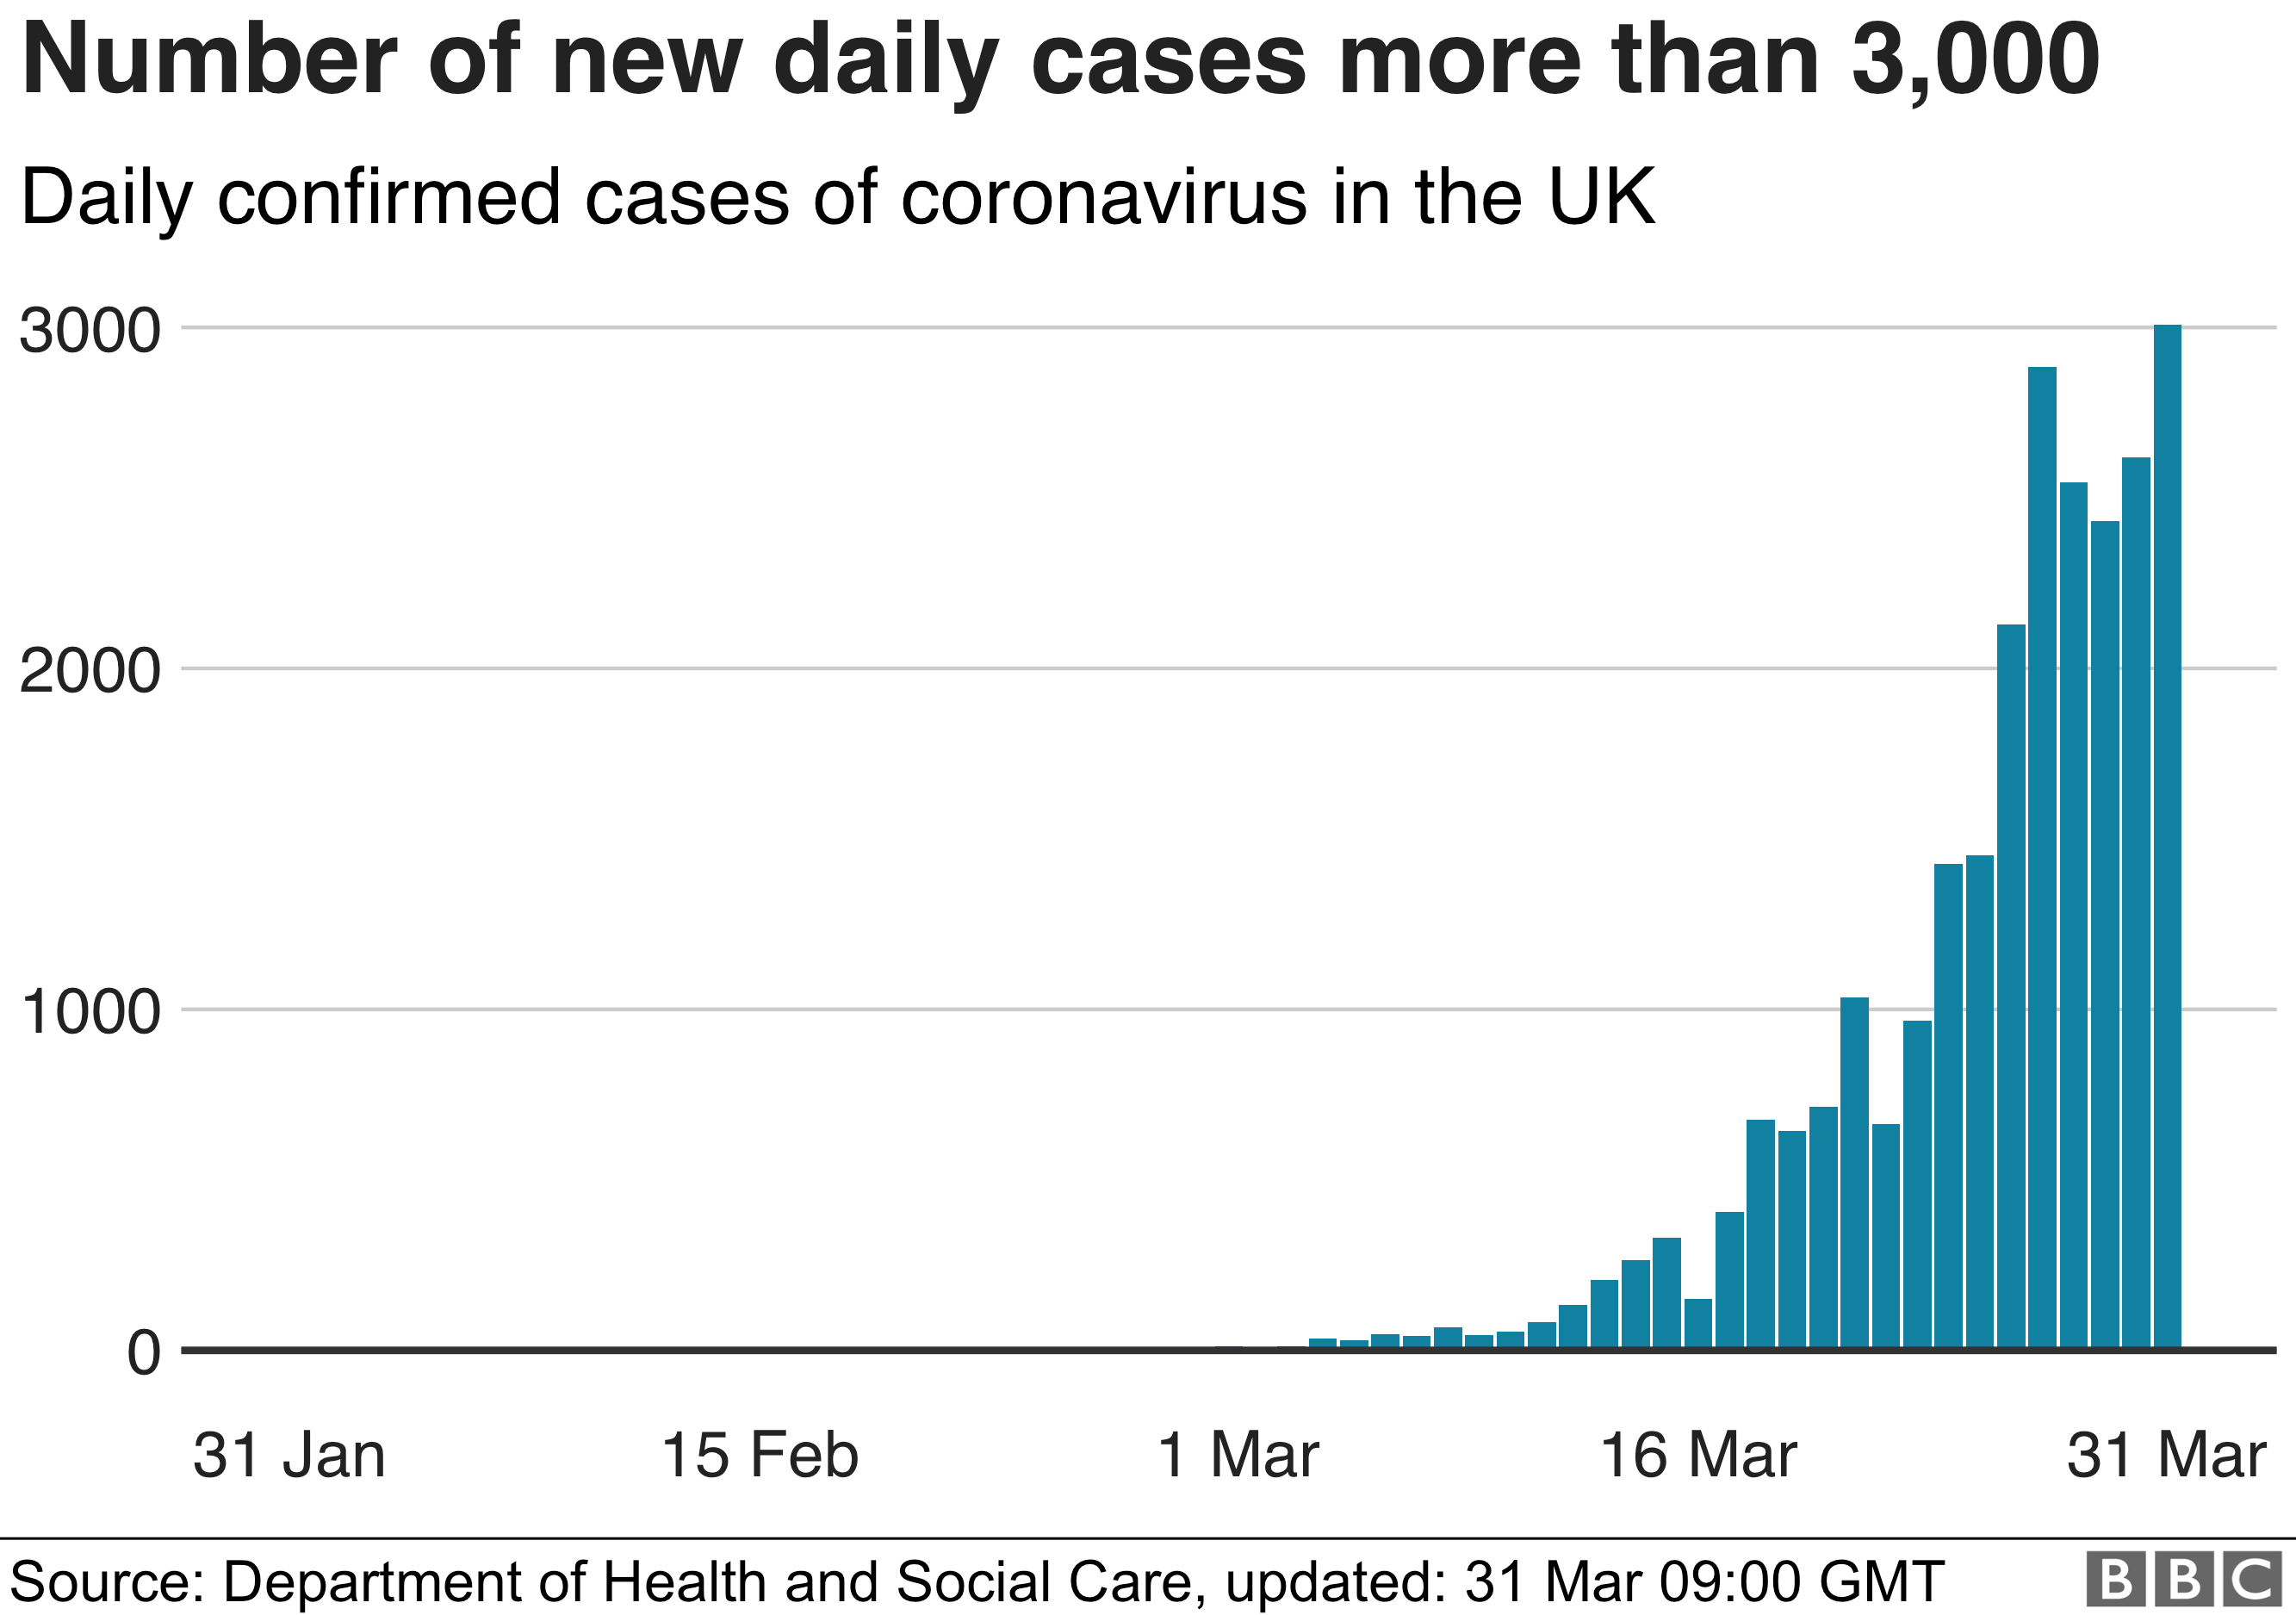 Bar chart showing number of cases has gone up by more than 3,000